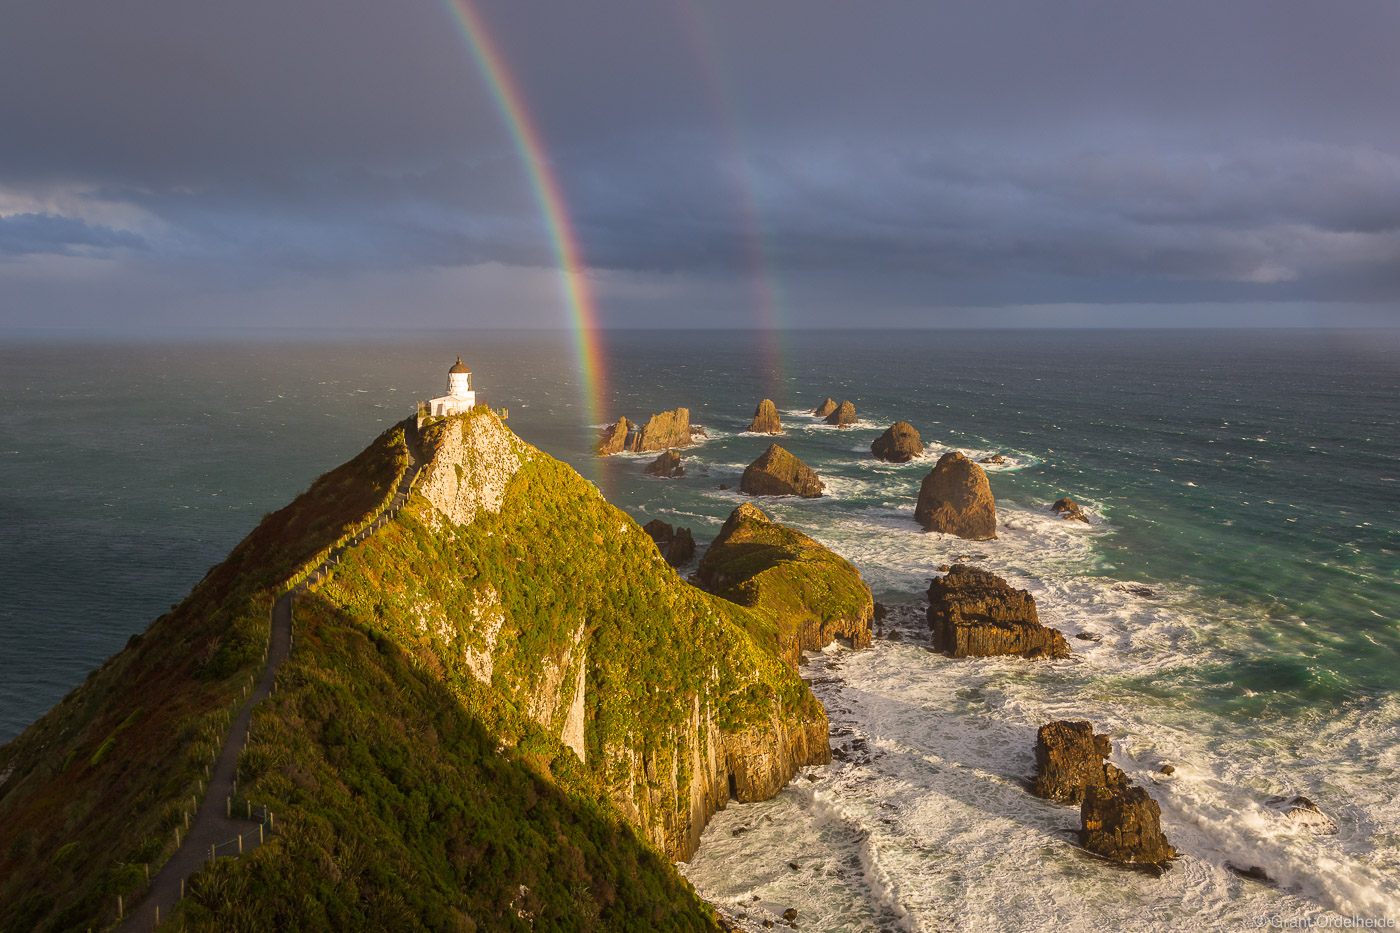 A rainbow over the Nugget Point Lighthouse along the coast of New Zealand's South Island.